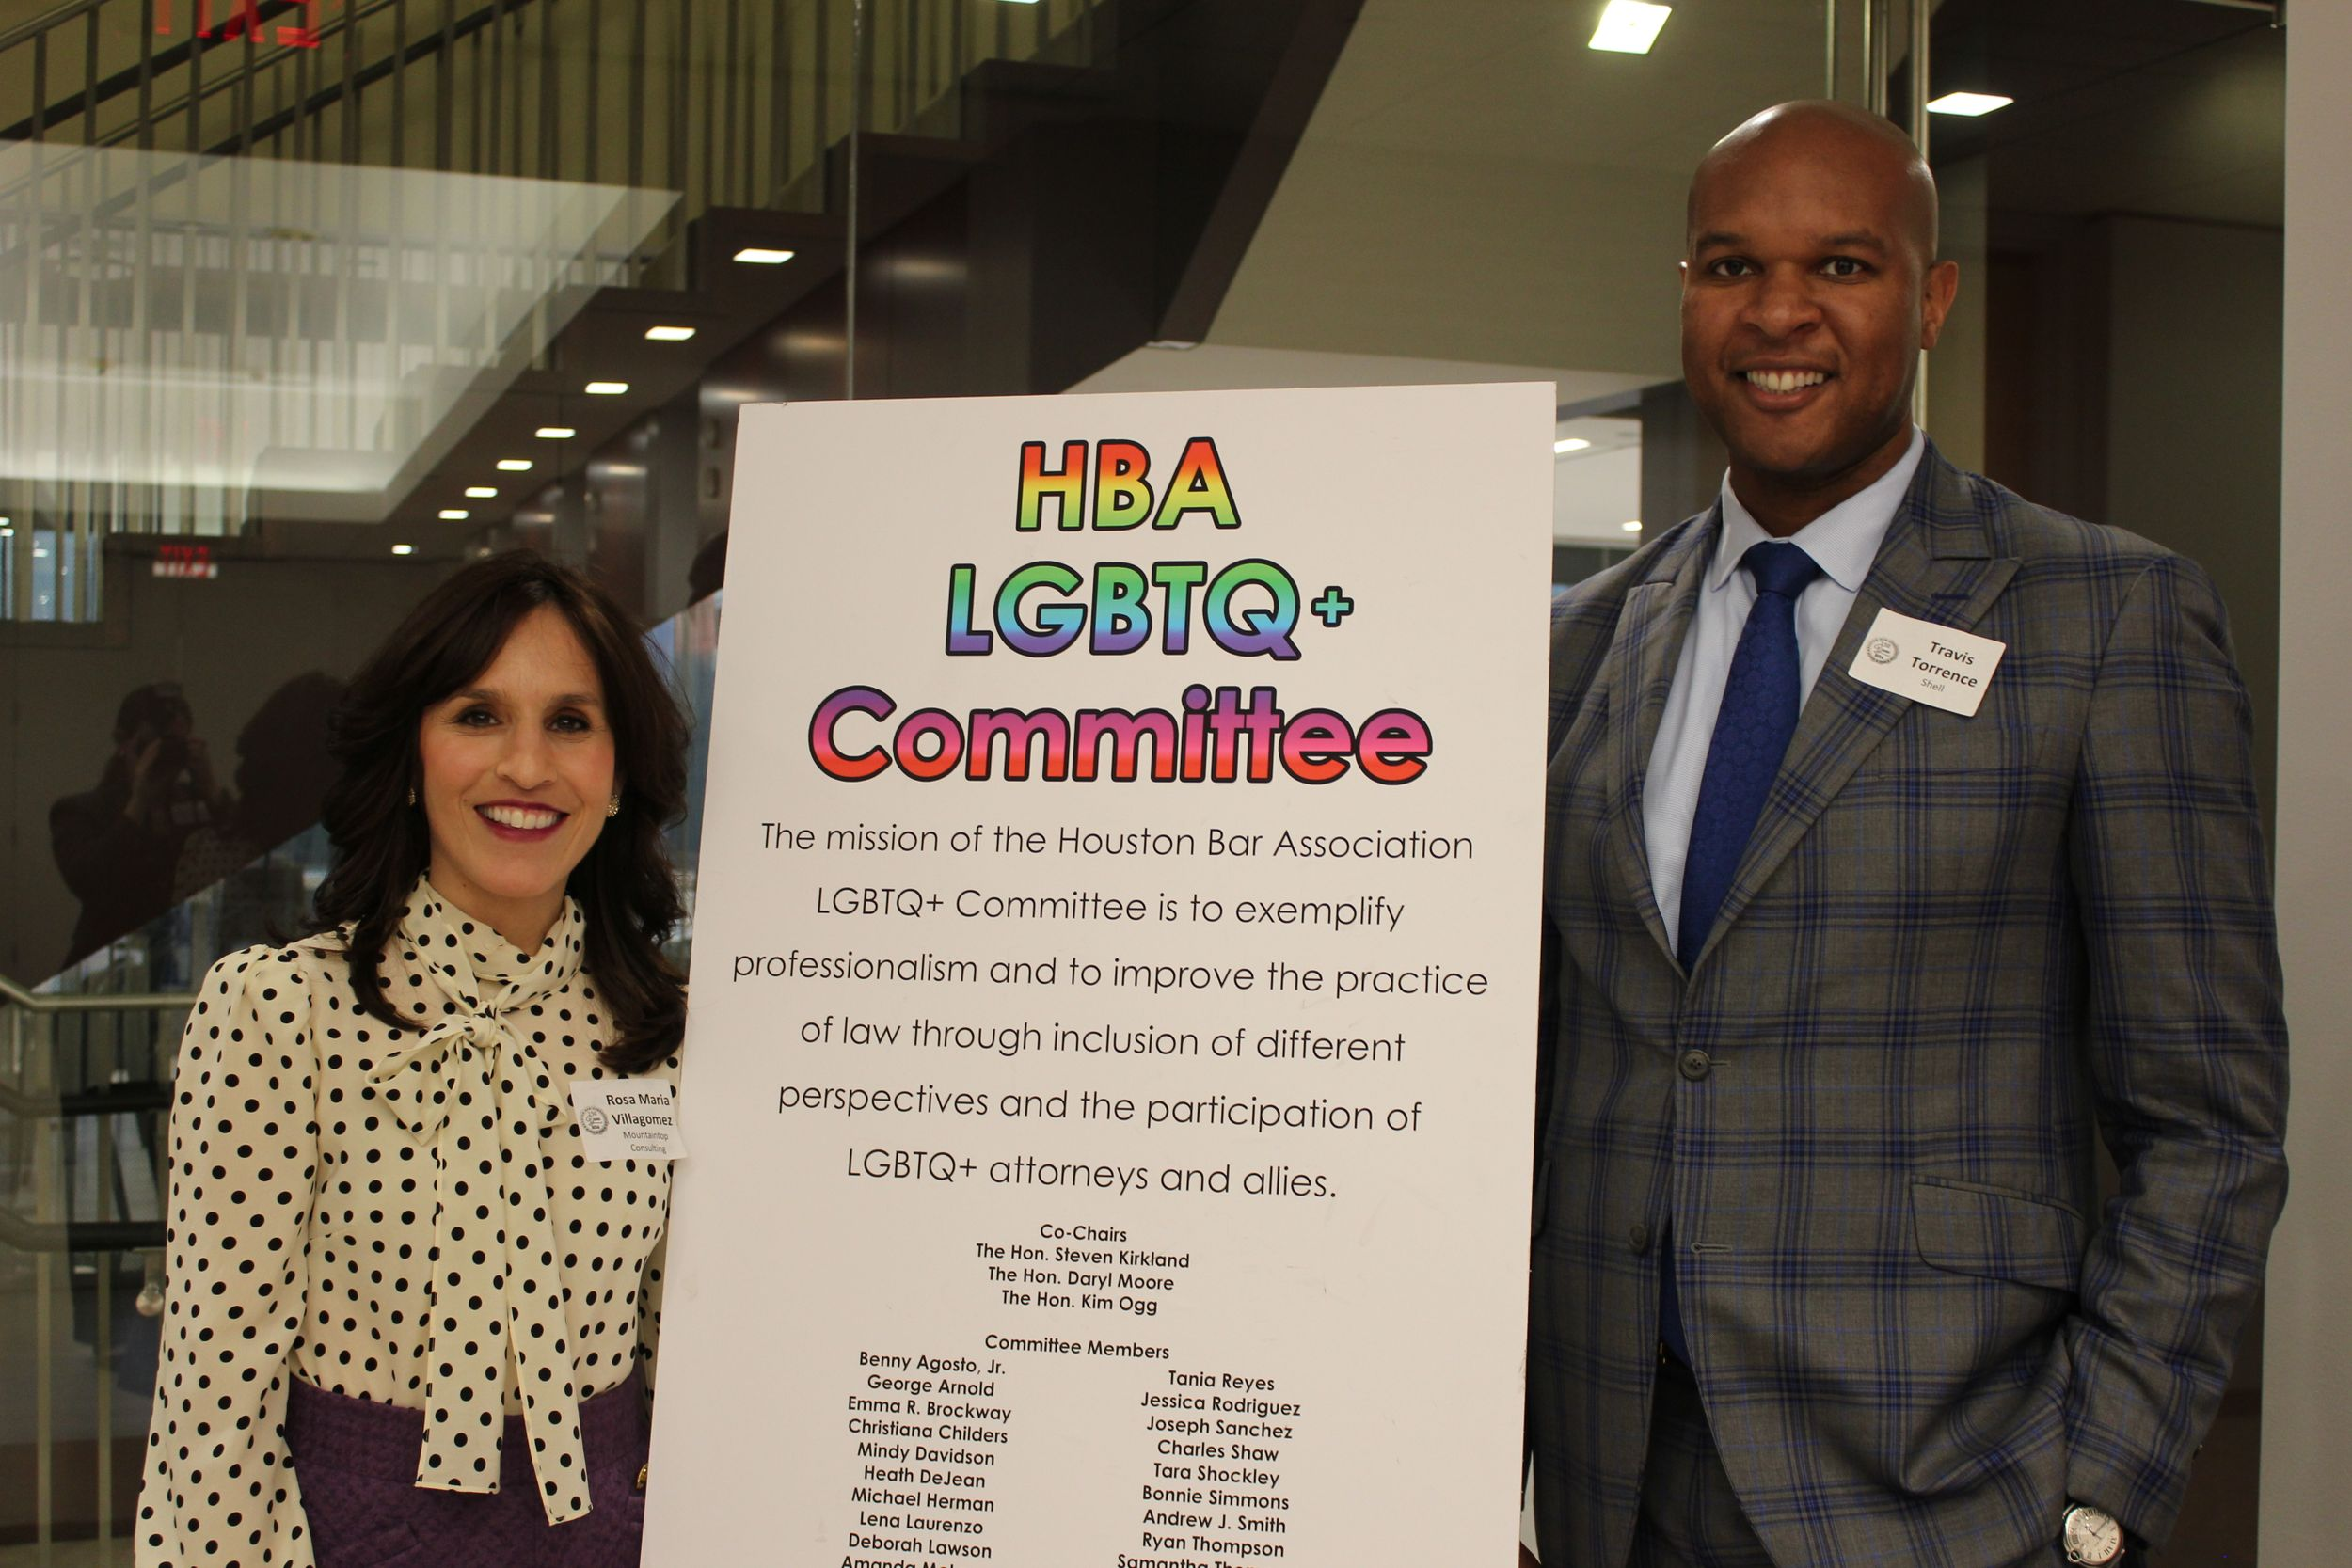 A man and a woman flank a sign for the LGBTQ Committee